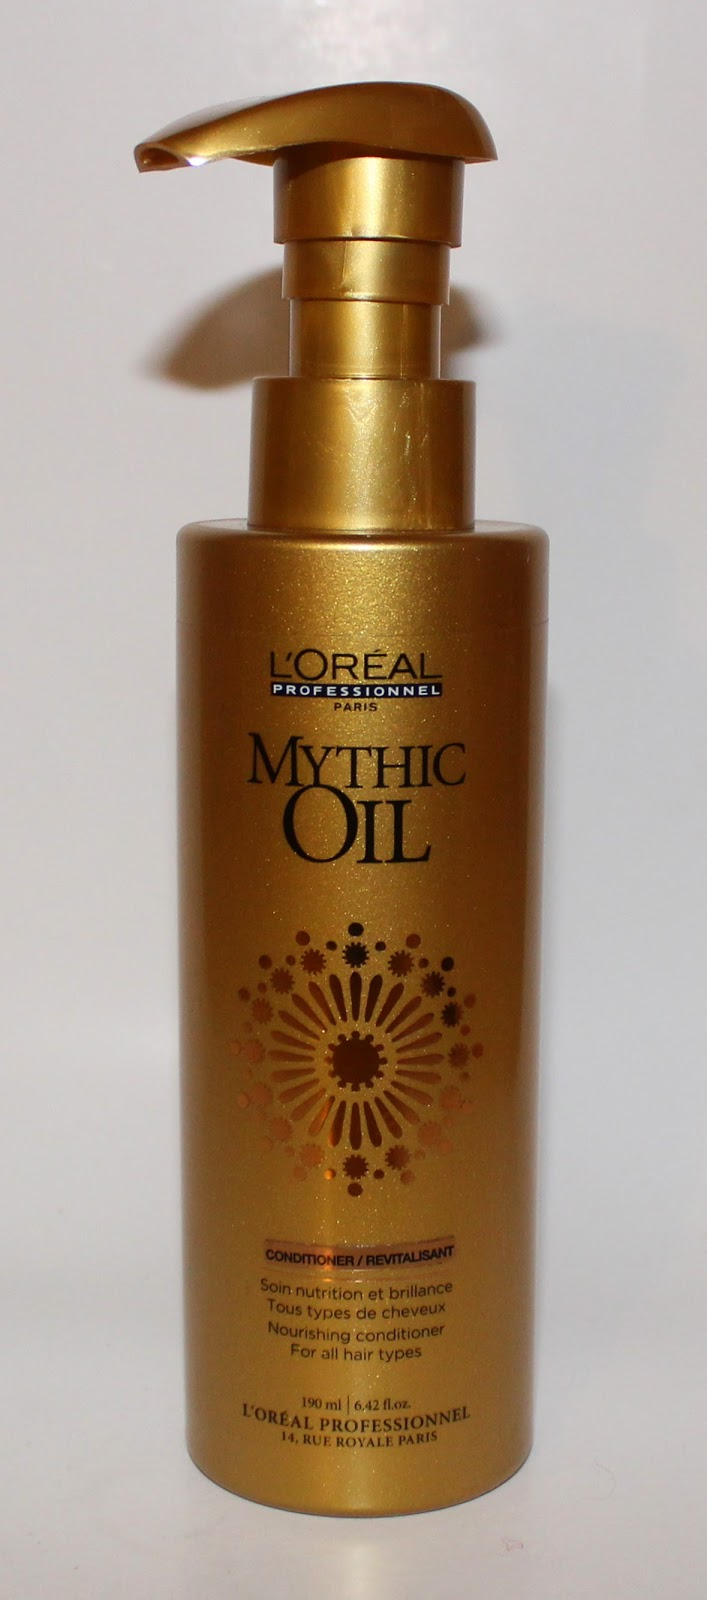 L'Oréal Professional Mythic Oil Nourishing Conditioner